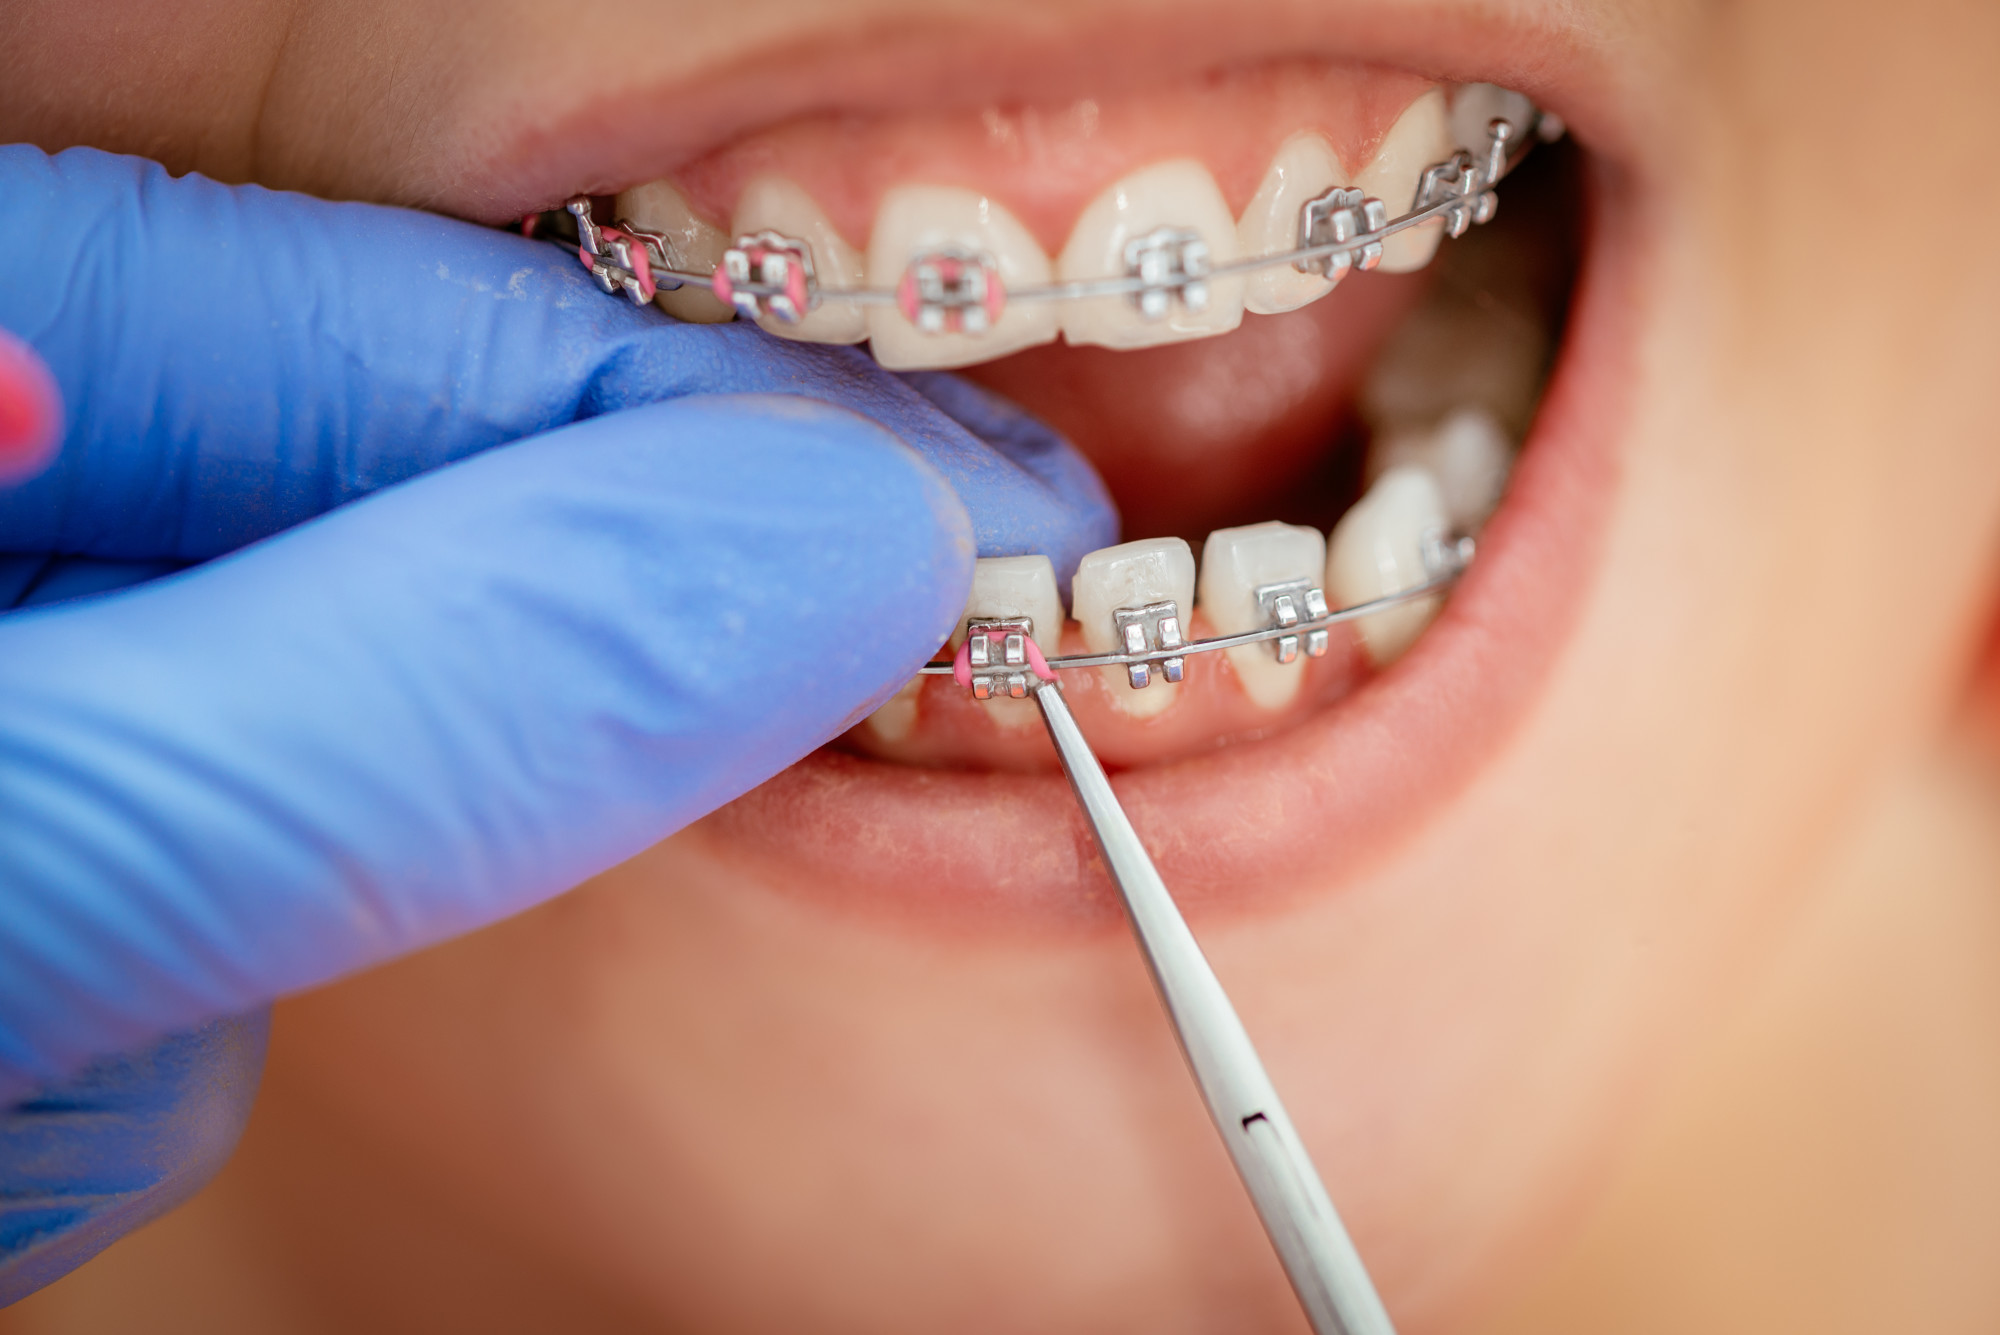 Person Undergoing Dental Procedure on Her Braces